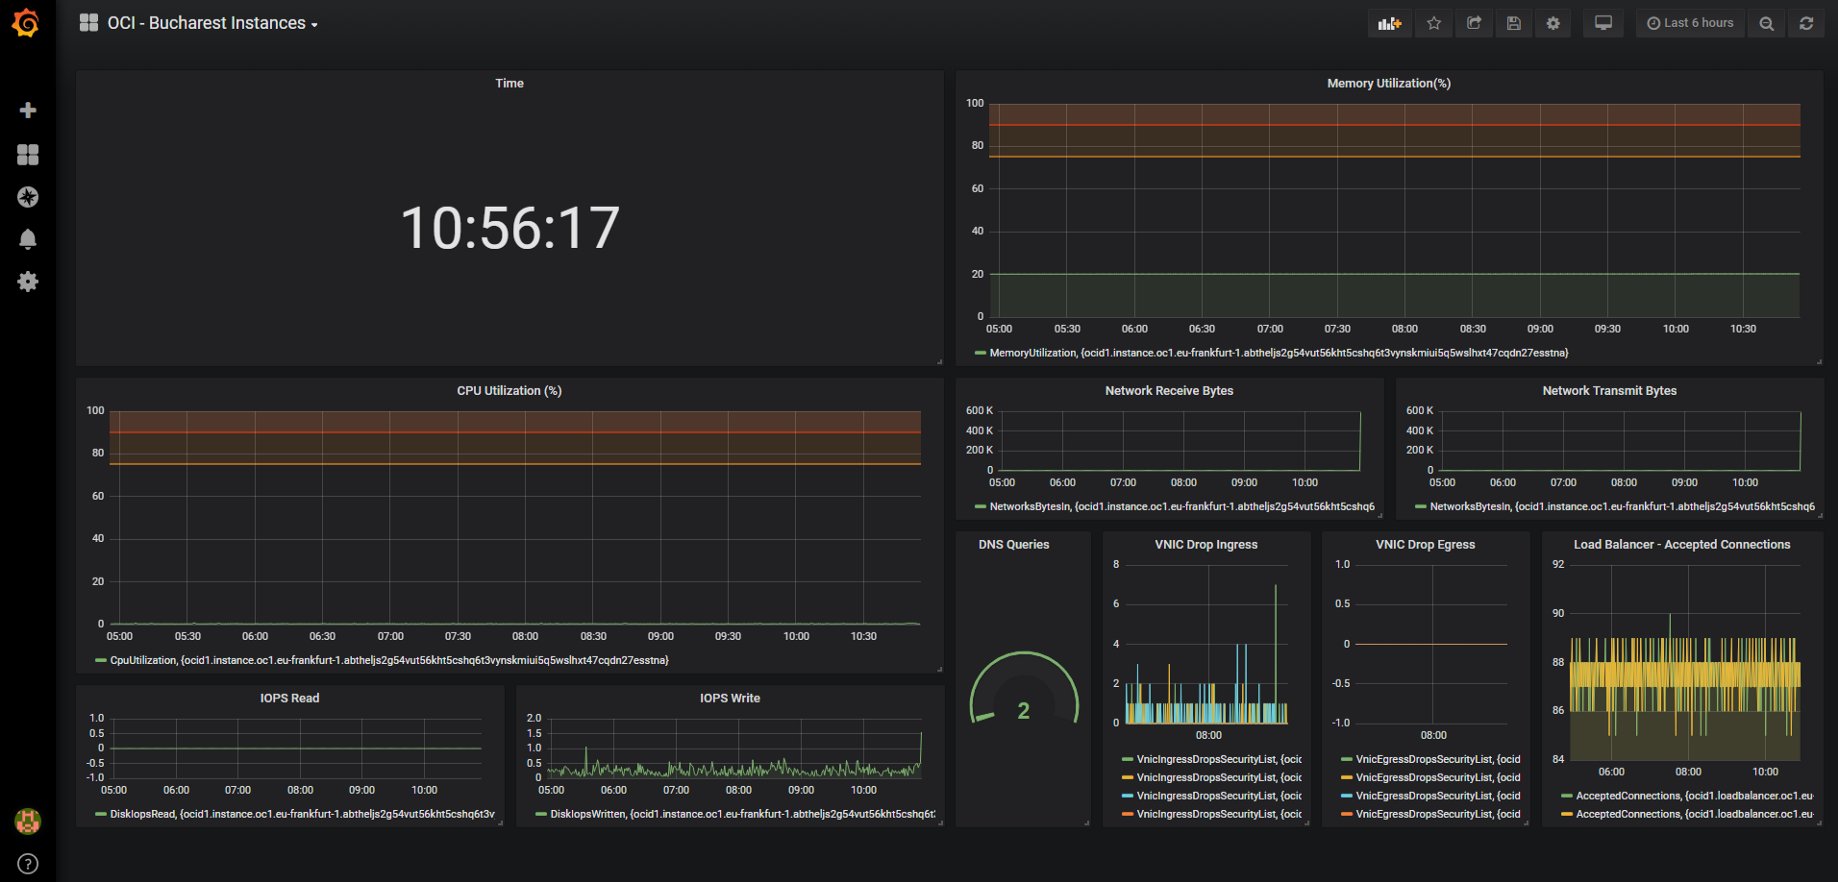 Monitoring Oracle Cloud Infrastructure with Grafana